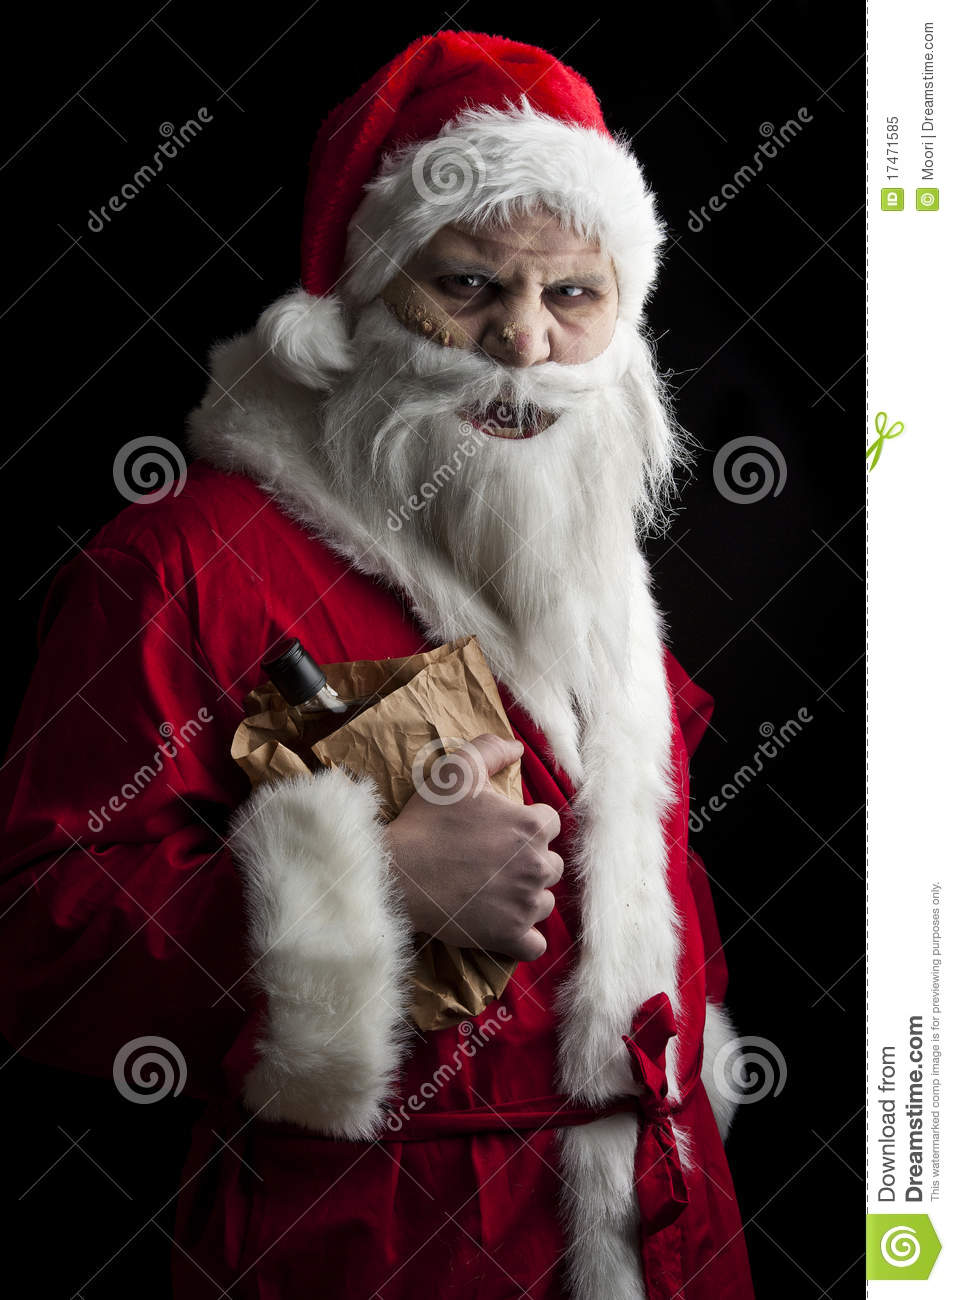 Merry Scary Christmas Royalty Free Stock Photo Image